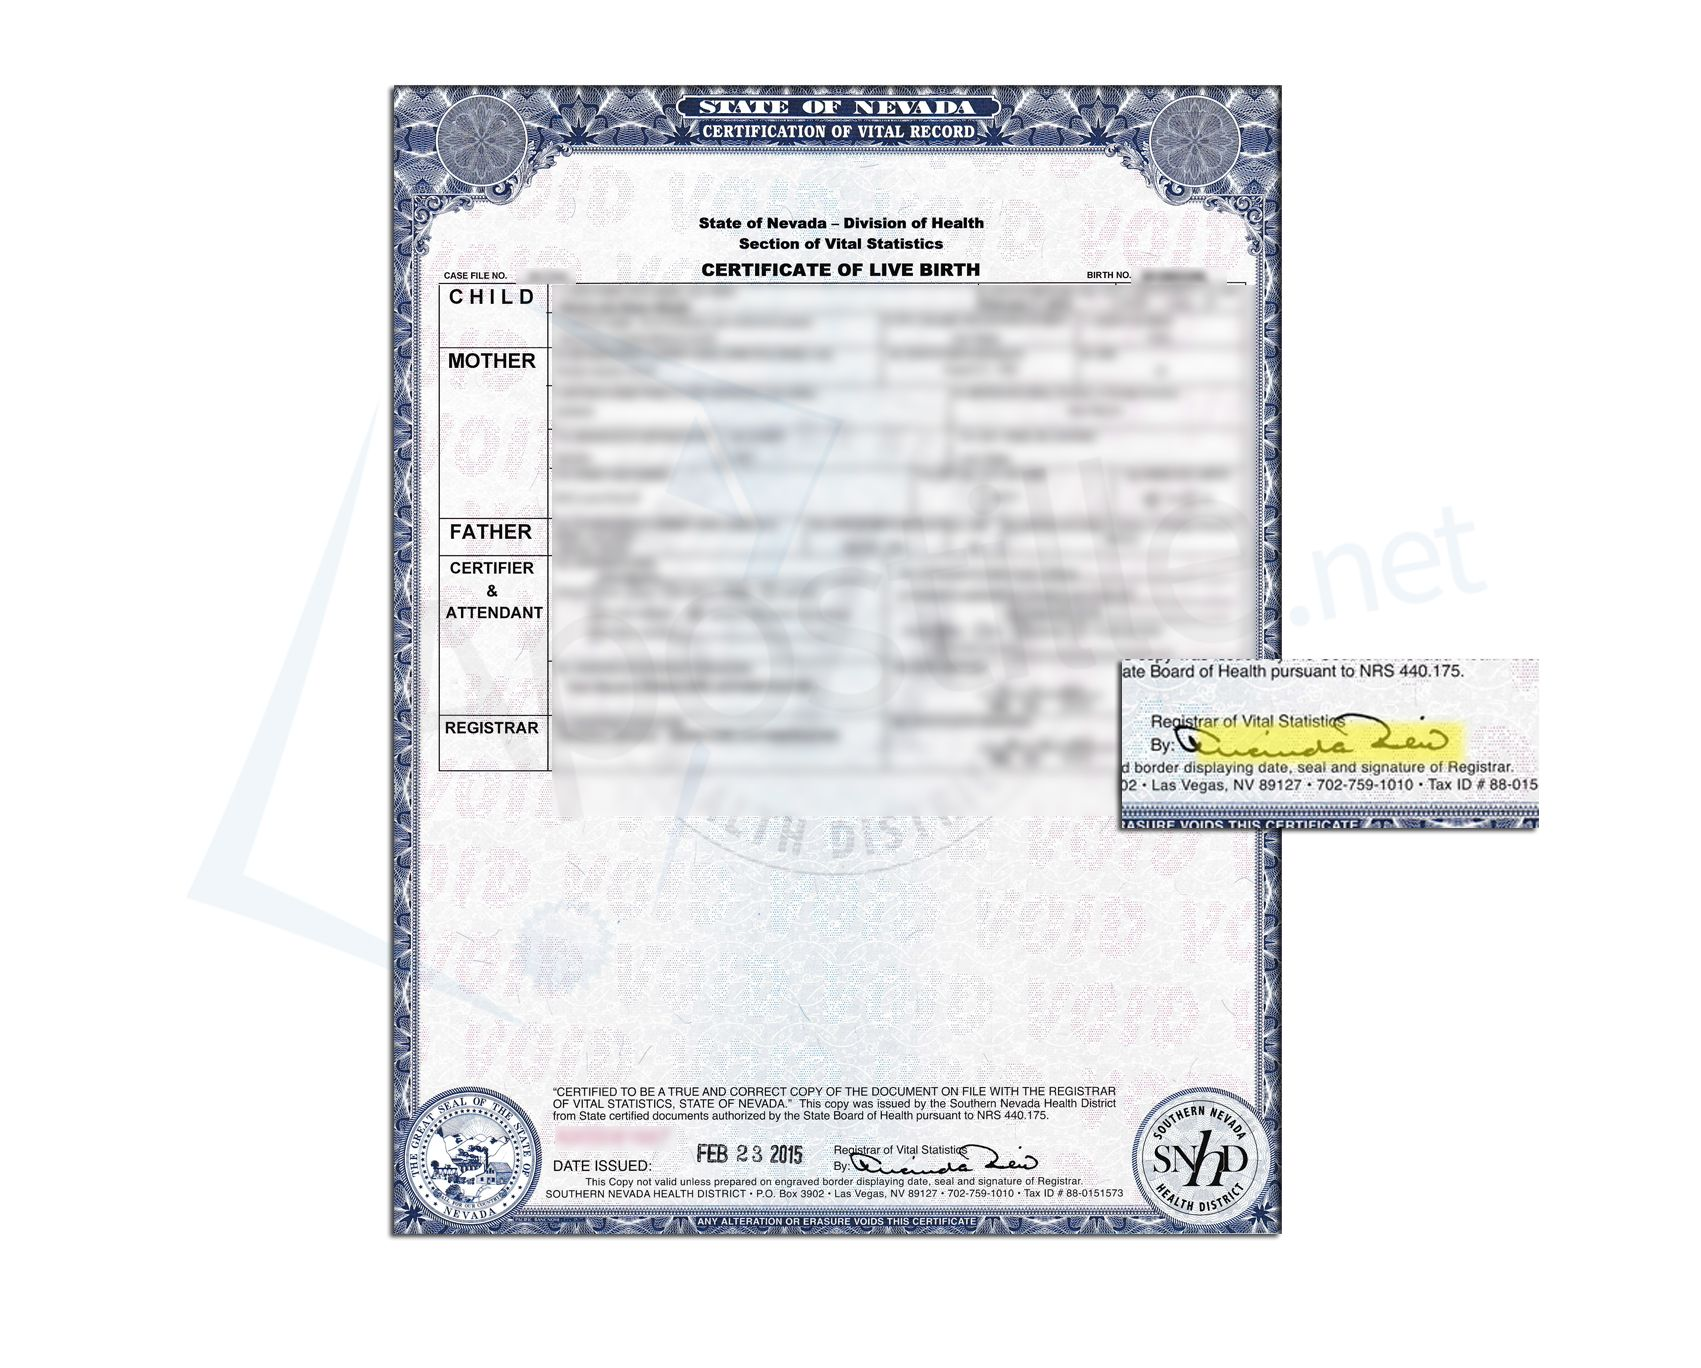 State of nevada birth certificate issued by a state registrar state of nevada birth certificate issued by a state registrar aiddatafo Images